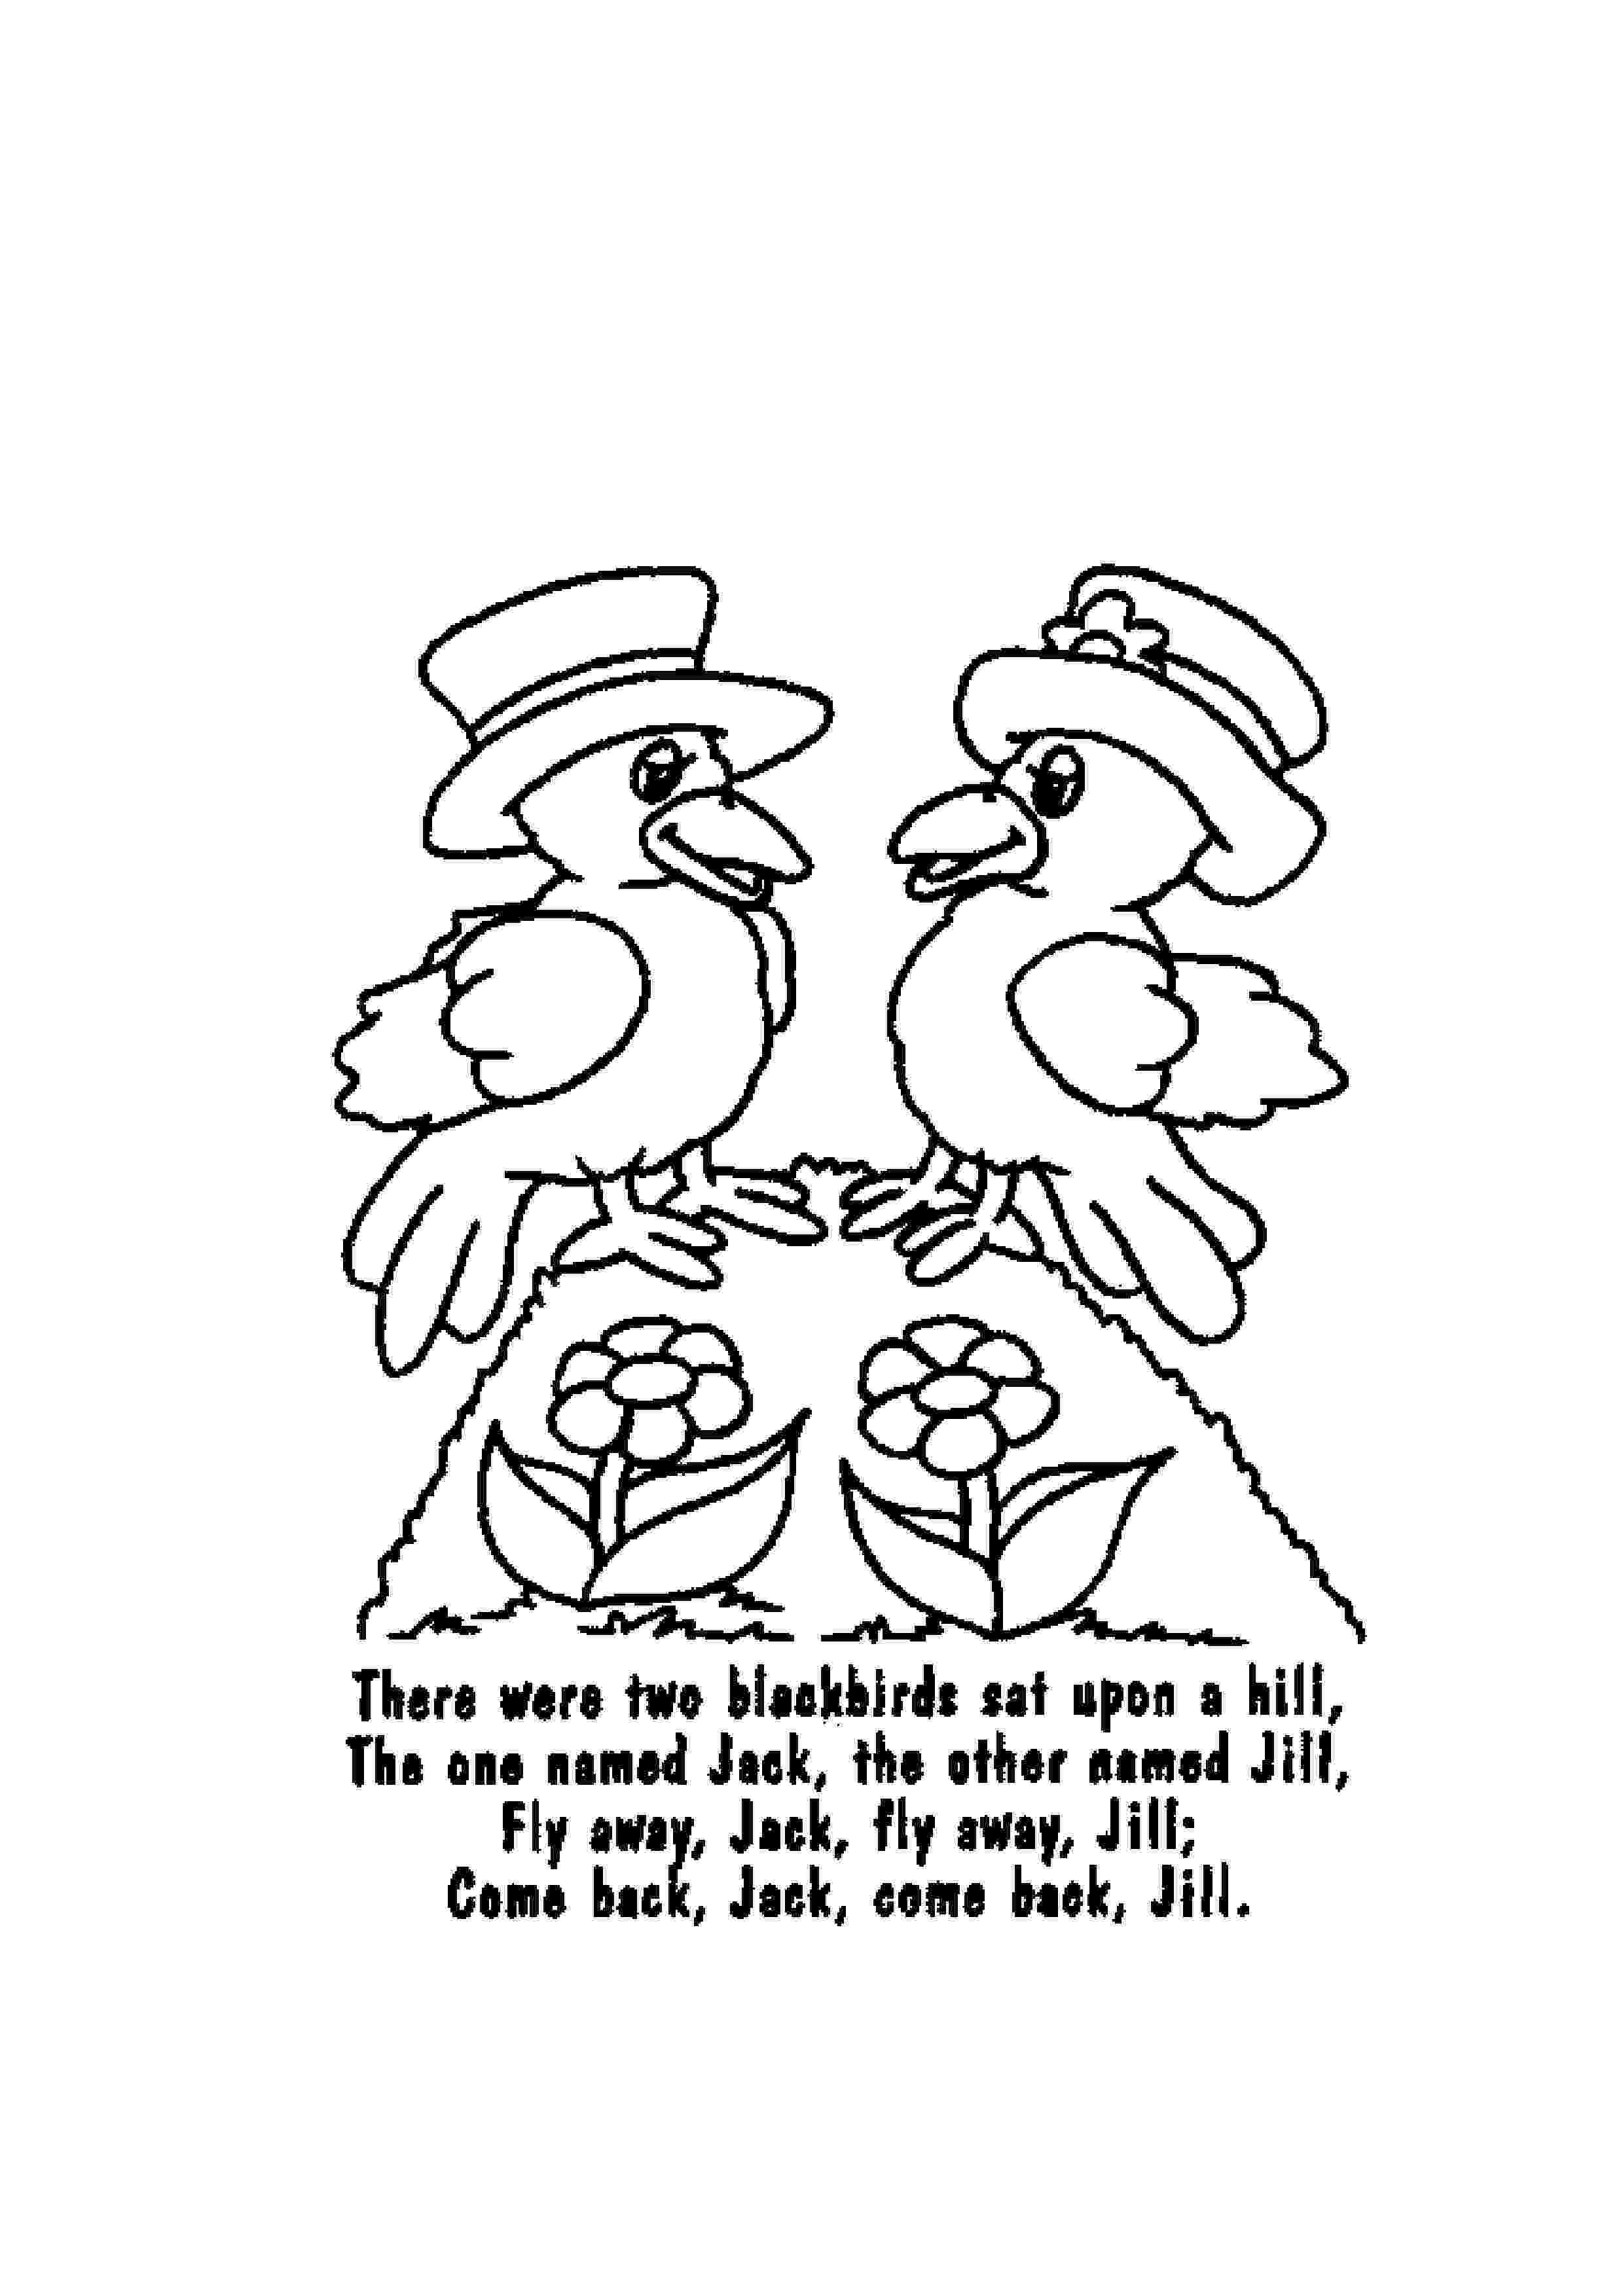 colouring pages for nursery rhymes nursery rhyme coloring pages getcoloringpagescom pages nursery colouring rhymes for